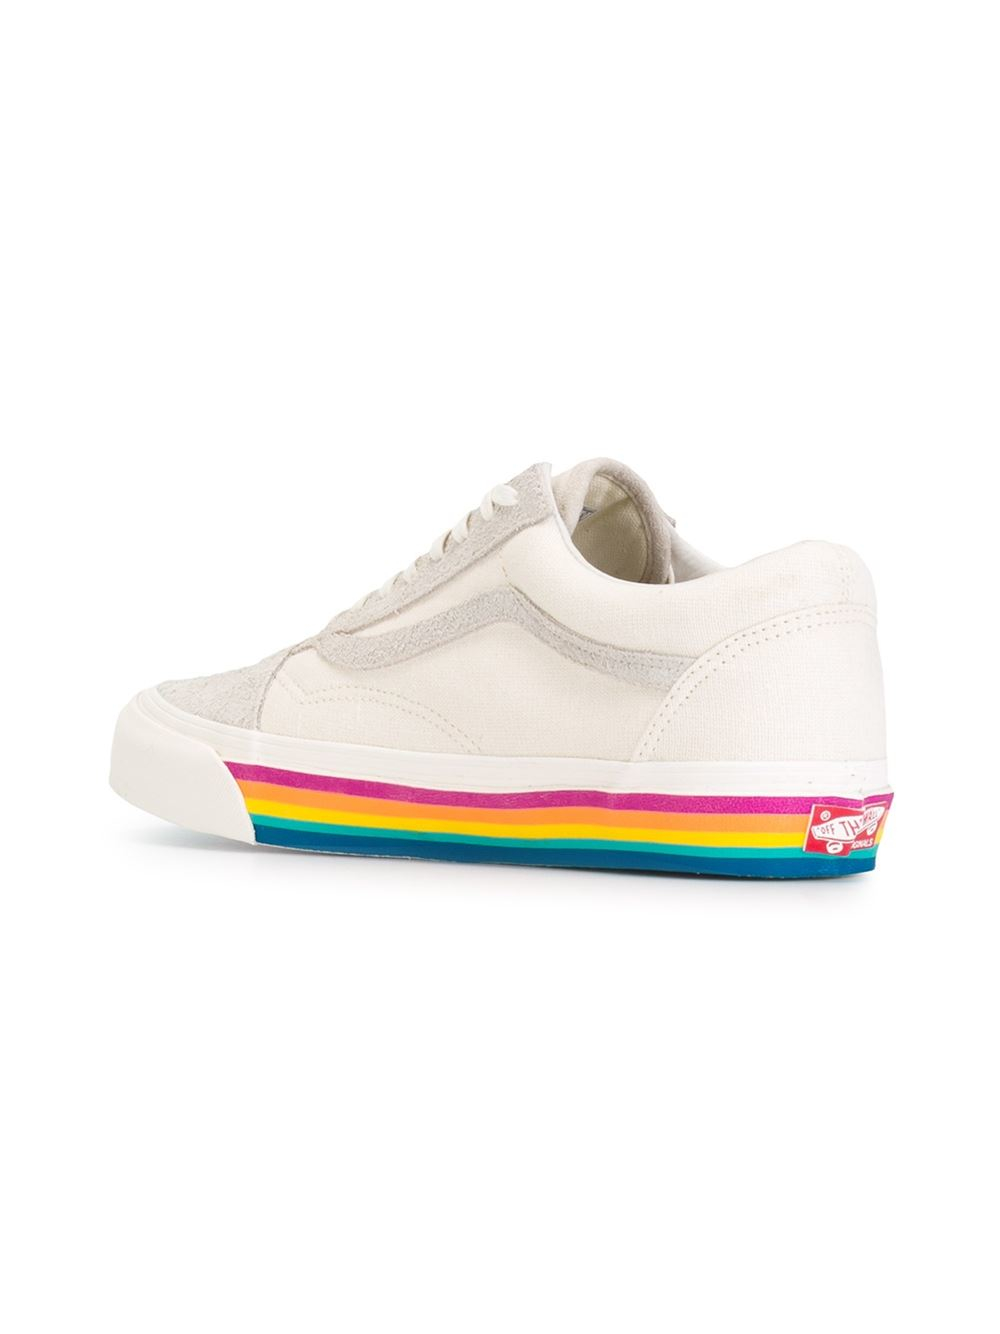 fdd2e64a Vans Lyst Natural Sole Rainbow In Sneakers p4nS8qwC